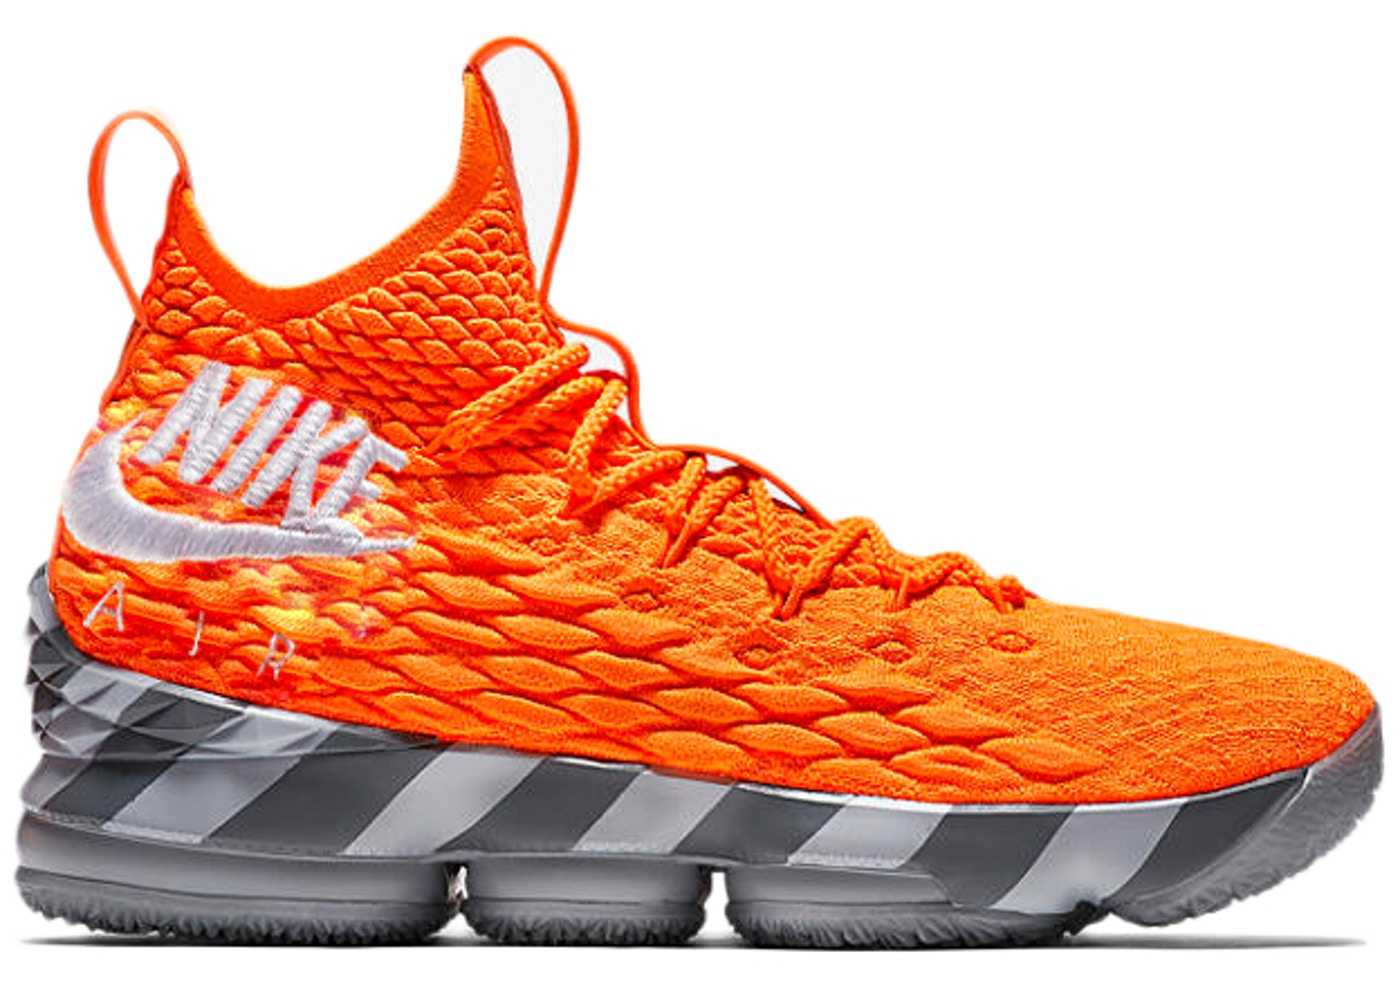 huge selection of 2f476 95d29 Nike LeBron 15 Shoes - Average Sale Price